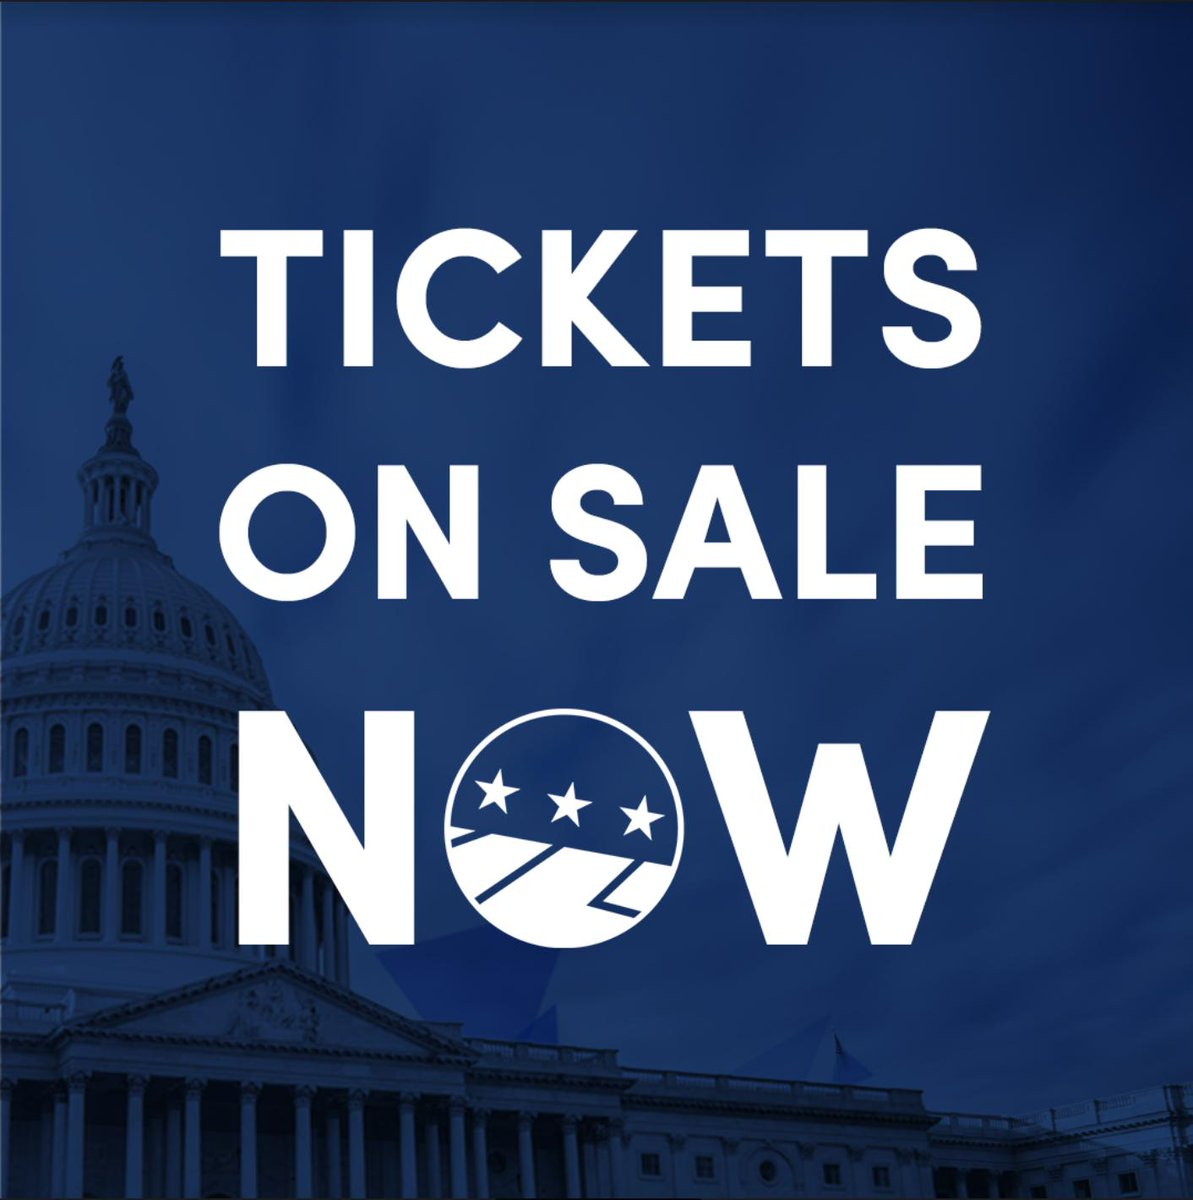 test Twitter Media - 🎟 Tickets are on sale now for the 2019 WSF Men's World Team Squash Championship! 🙌  🇺🇸 Washington D.C., United States 📍 @SquashOnFire  🗓 December 15-21, 2019 🌍 23 nations competing for the prestigious title 🏆  Get your tickets now ⬇️  https://t.co/lThqqgnHNm https://t.co/acC8U0Digy